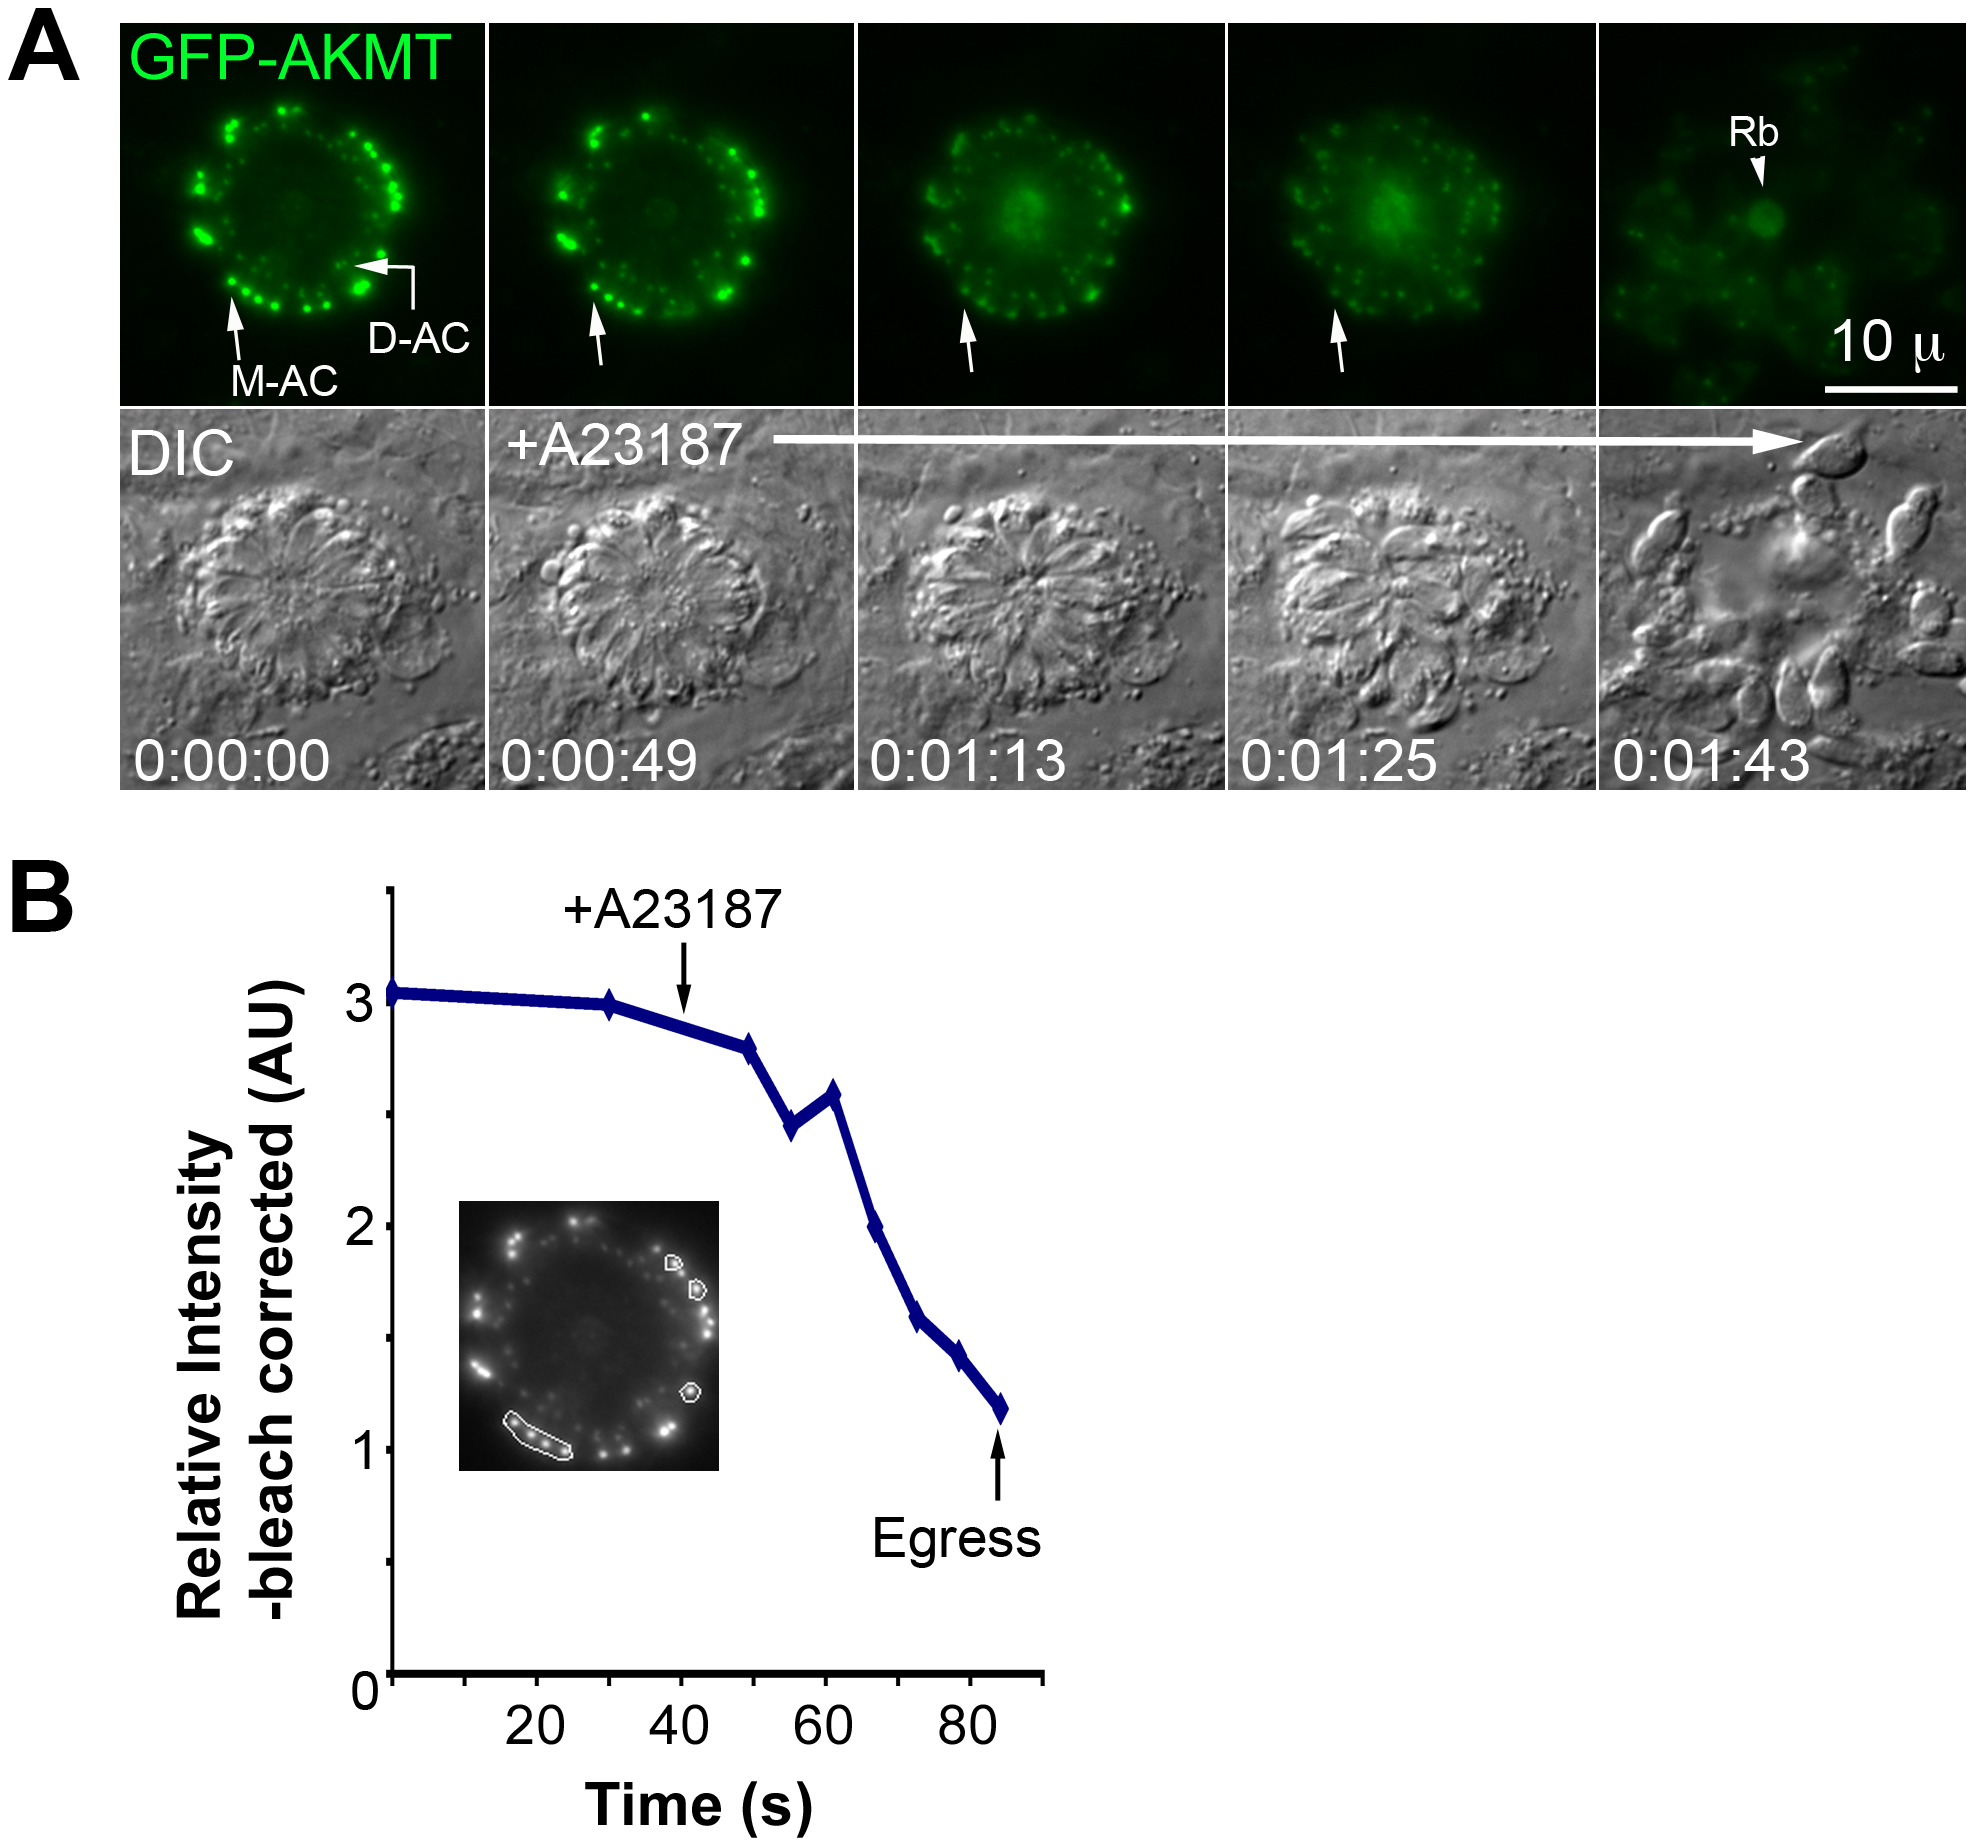 Elevated [Ca<sup>2+</sup>] triggers the dispersal of AKMT from the apical complex before A23187 induced parasite egress.